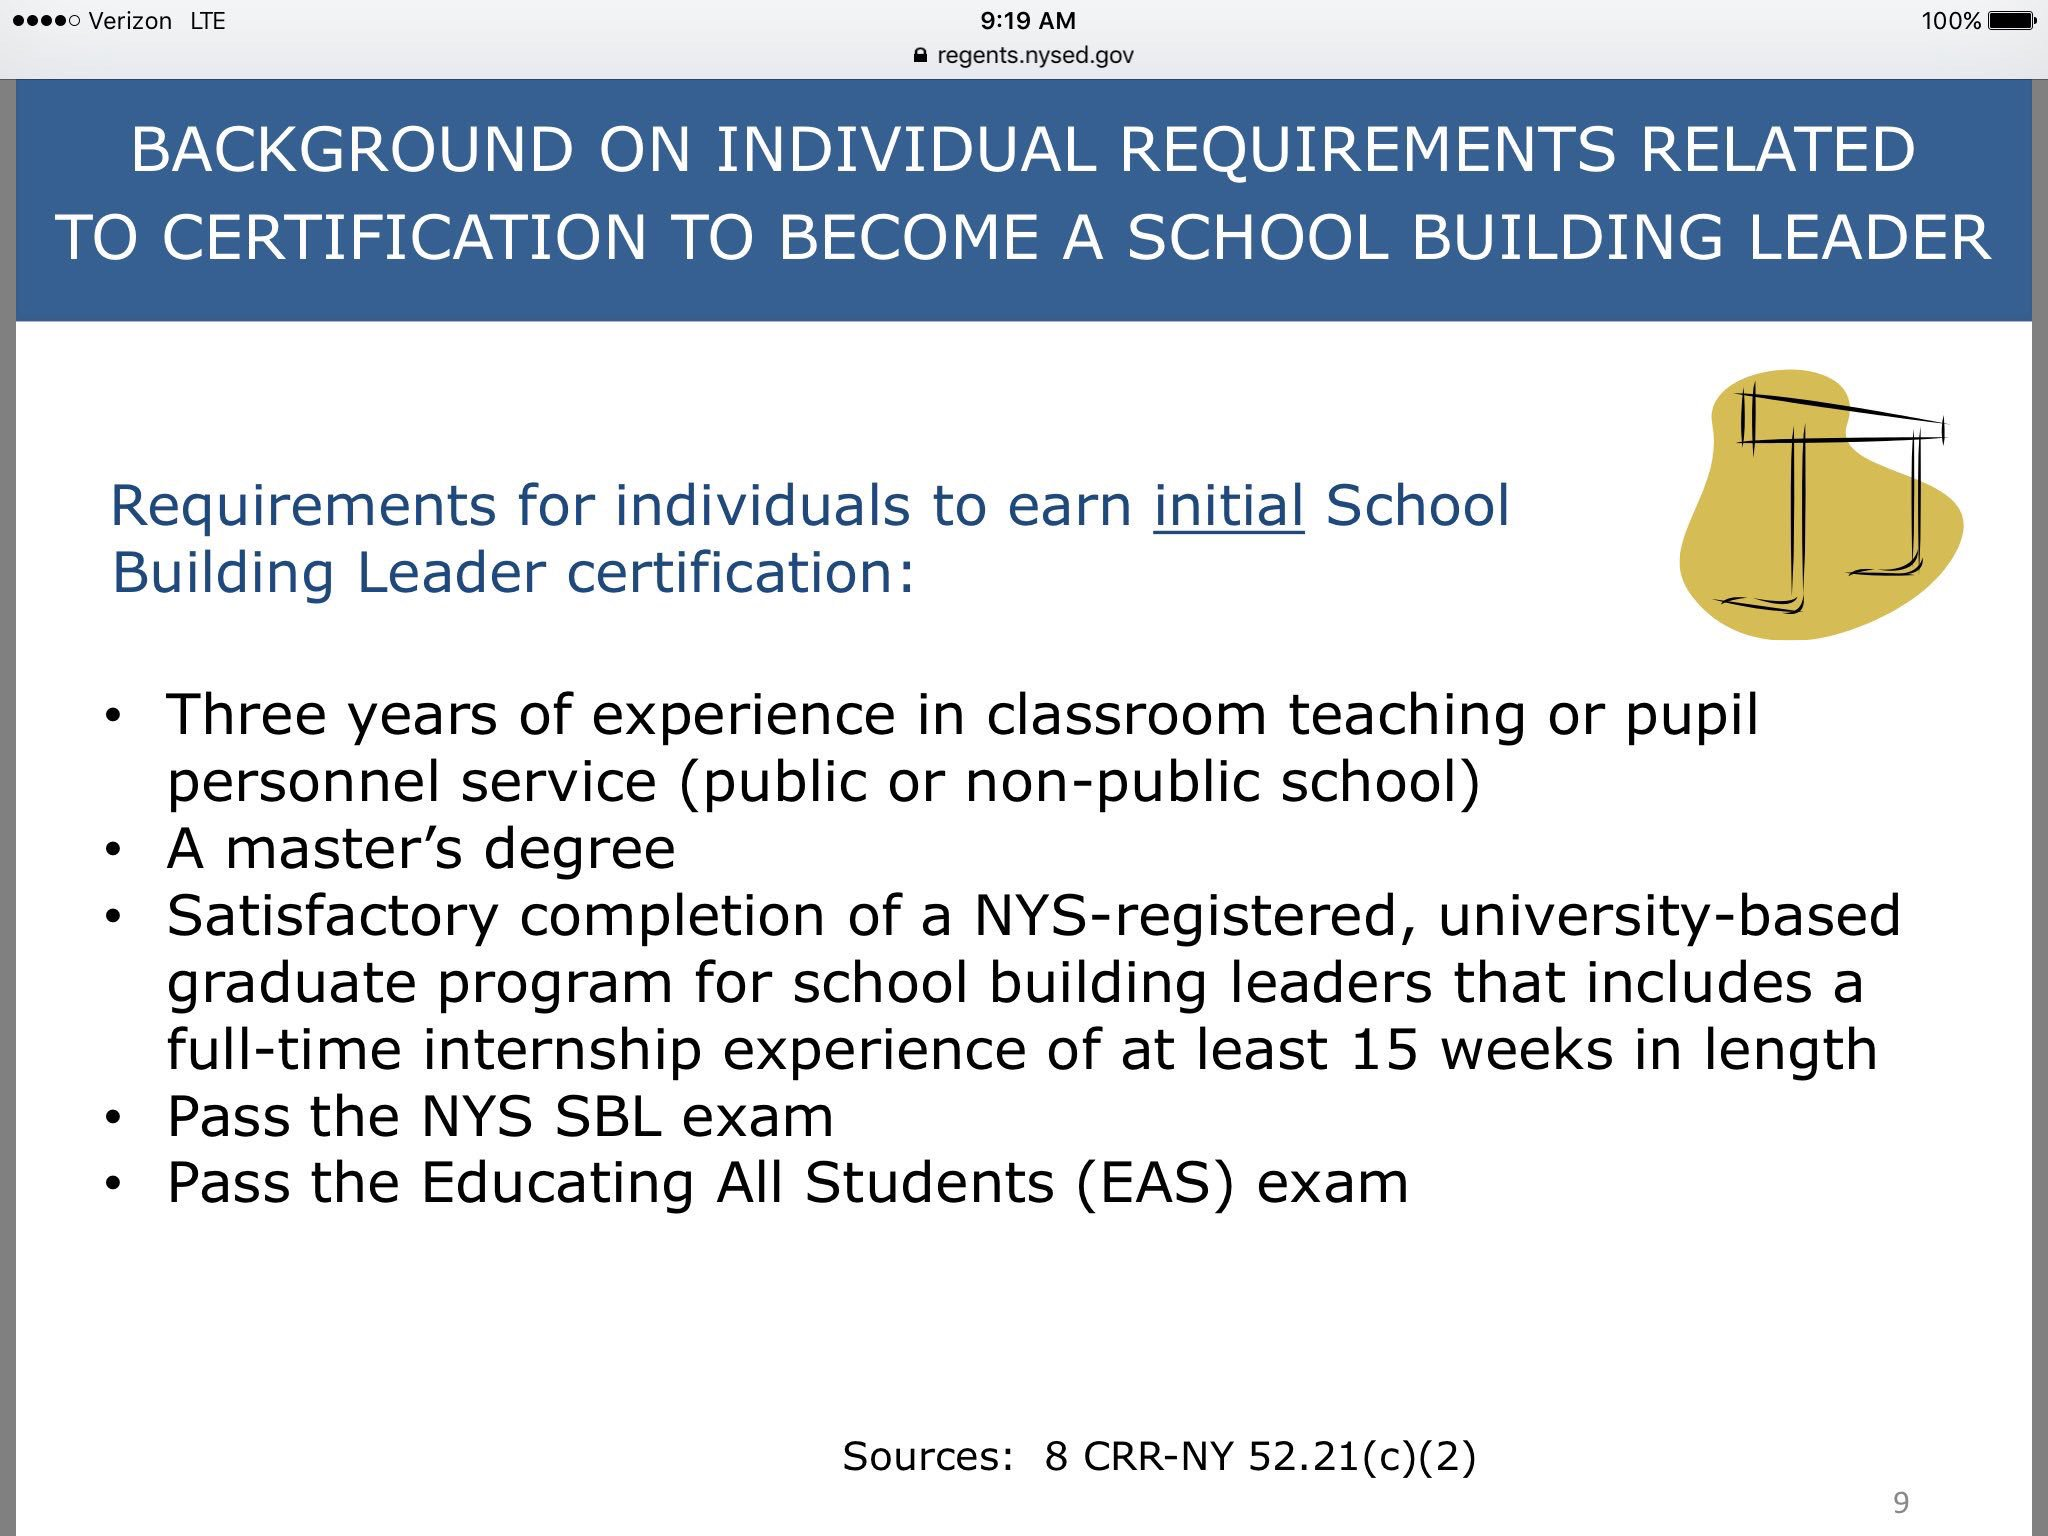 Background on requirements to become a school building leader @NYSEDNews https://t.co/vYGIlfN1uL